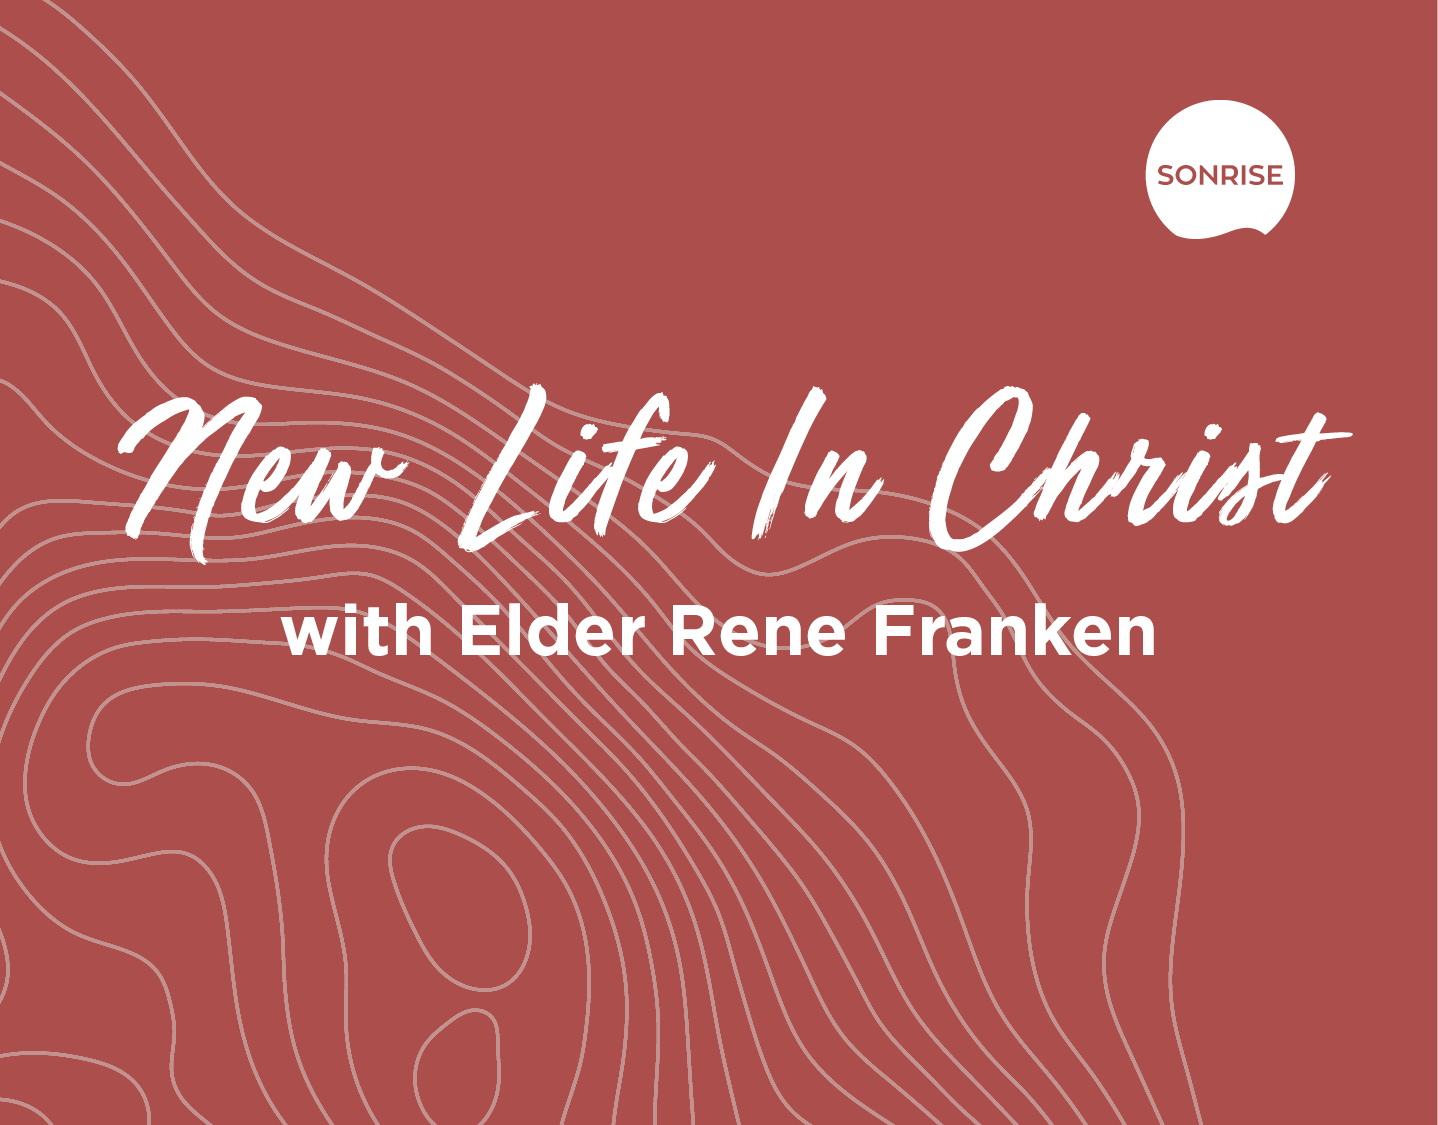 New Life In Christ banner